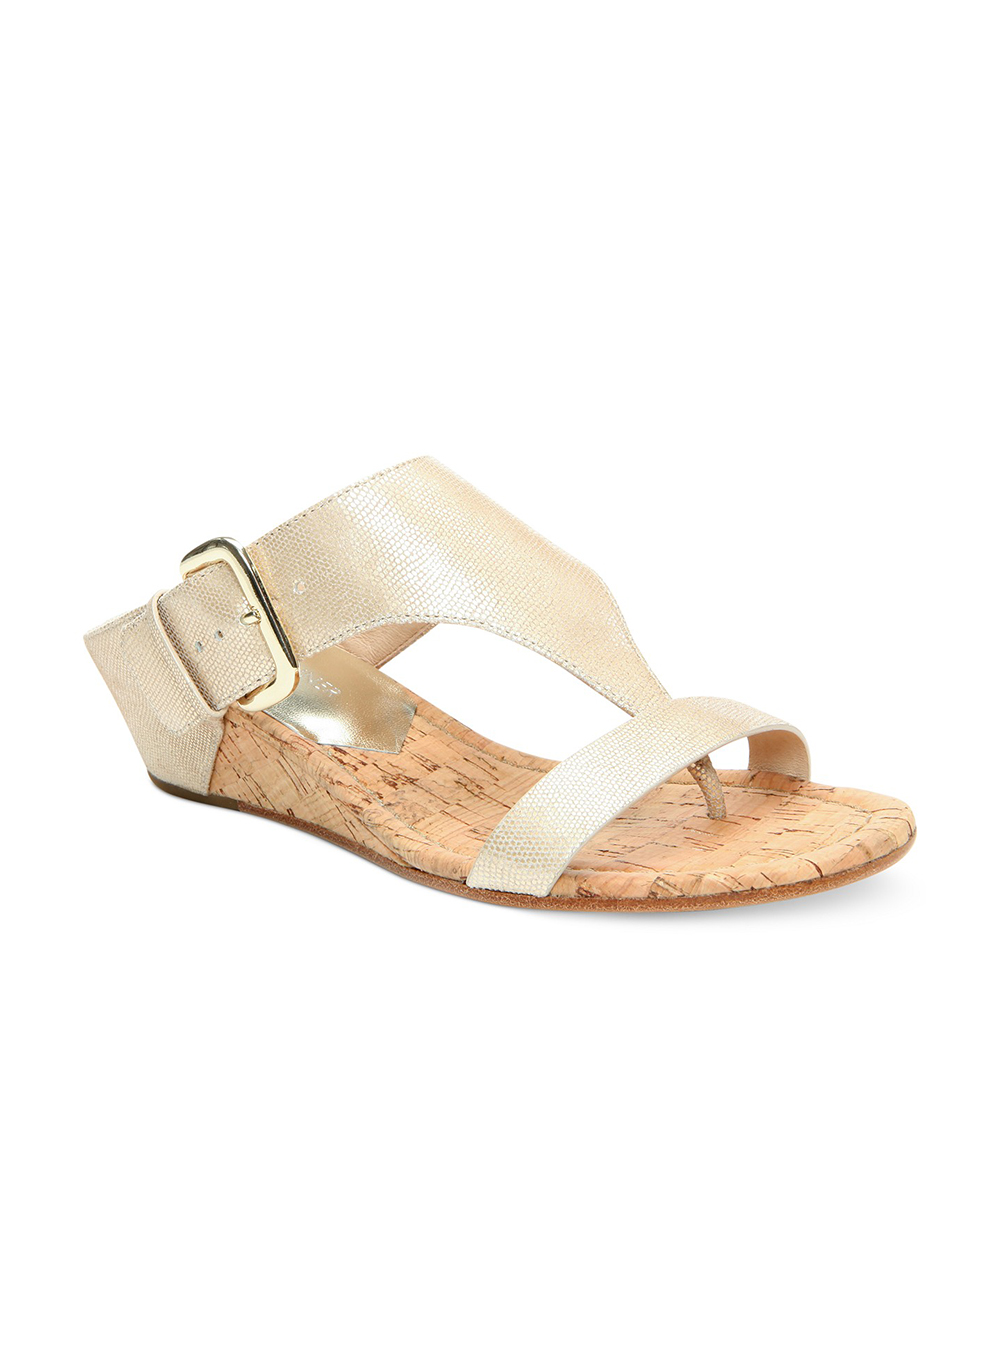 Women's Sandals for Macys Memorial Day Sales